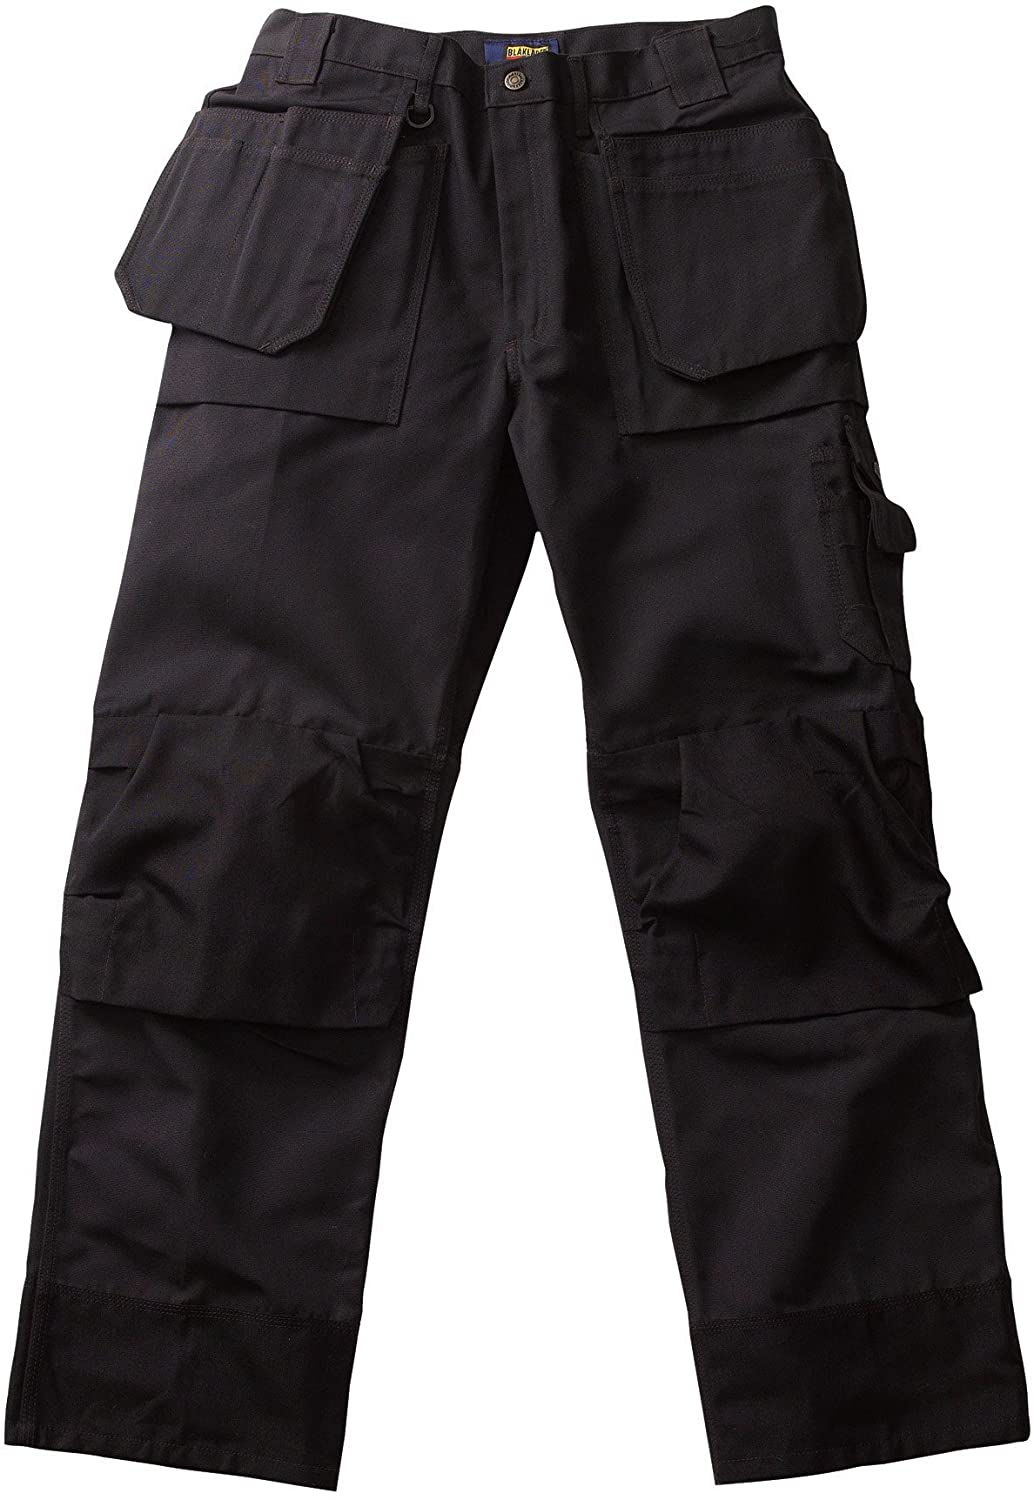 Blaklader Workwear Heavy Worker Pant with Utility Pockets, 40-Inch Waist, 30-Inch Length, 13-Ounce Cotton Twill Black/Black